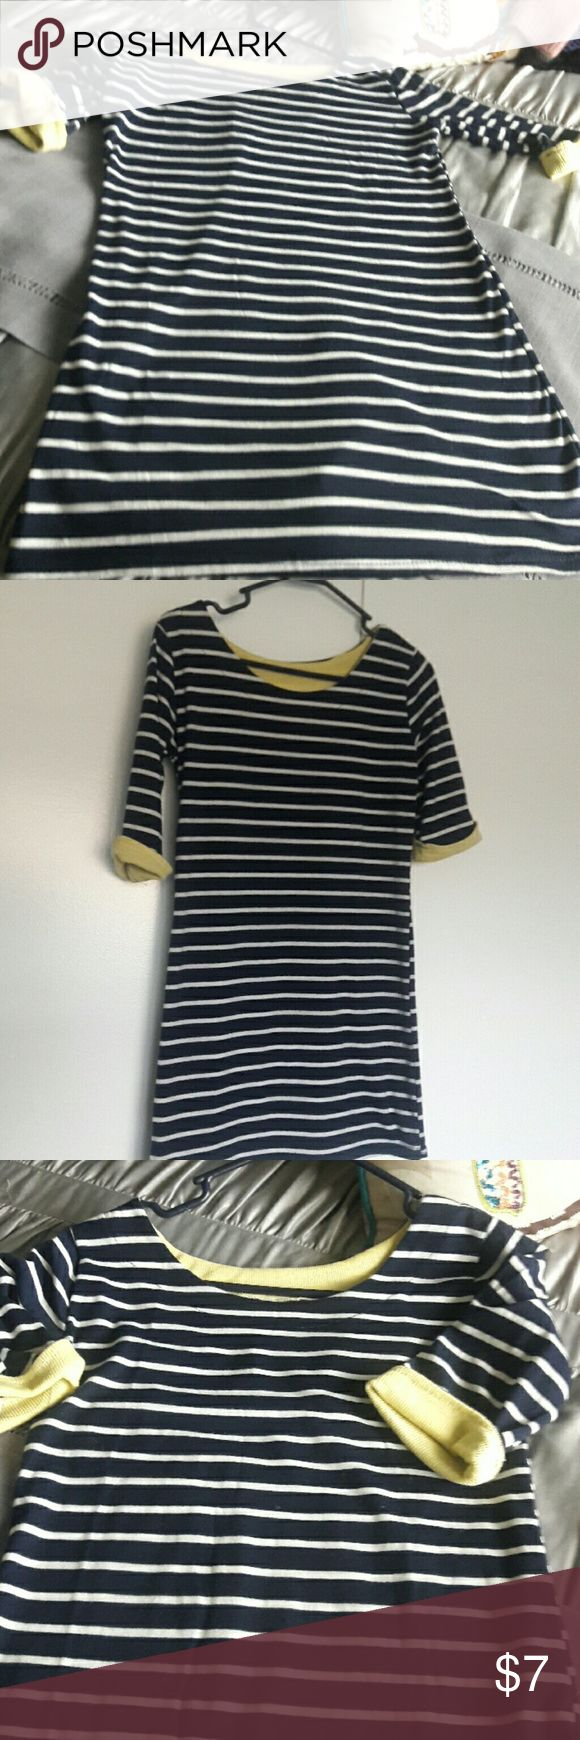 Navy and white stripe top with yellow trim Very cute top.  Do not know maker no tag.  This is a Size small to medium.  Good condition.  Got at designer consignment store. Bundle discount offered. Tops Tees - Short Sleeve